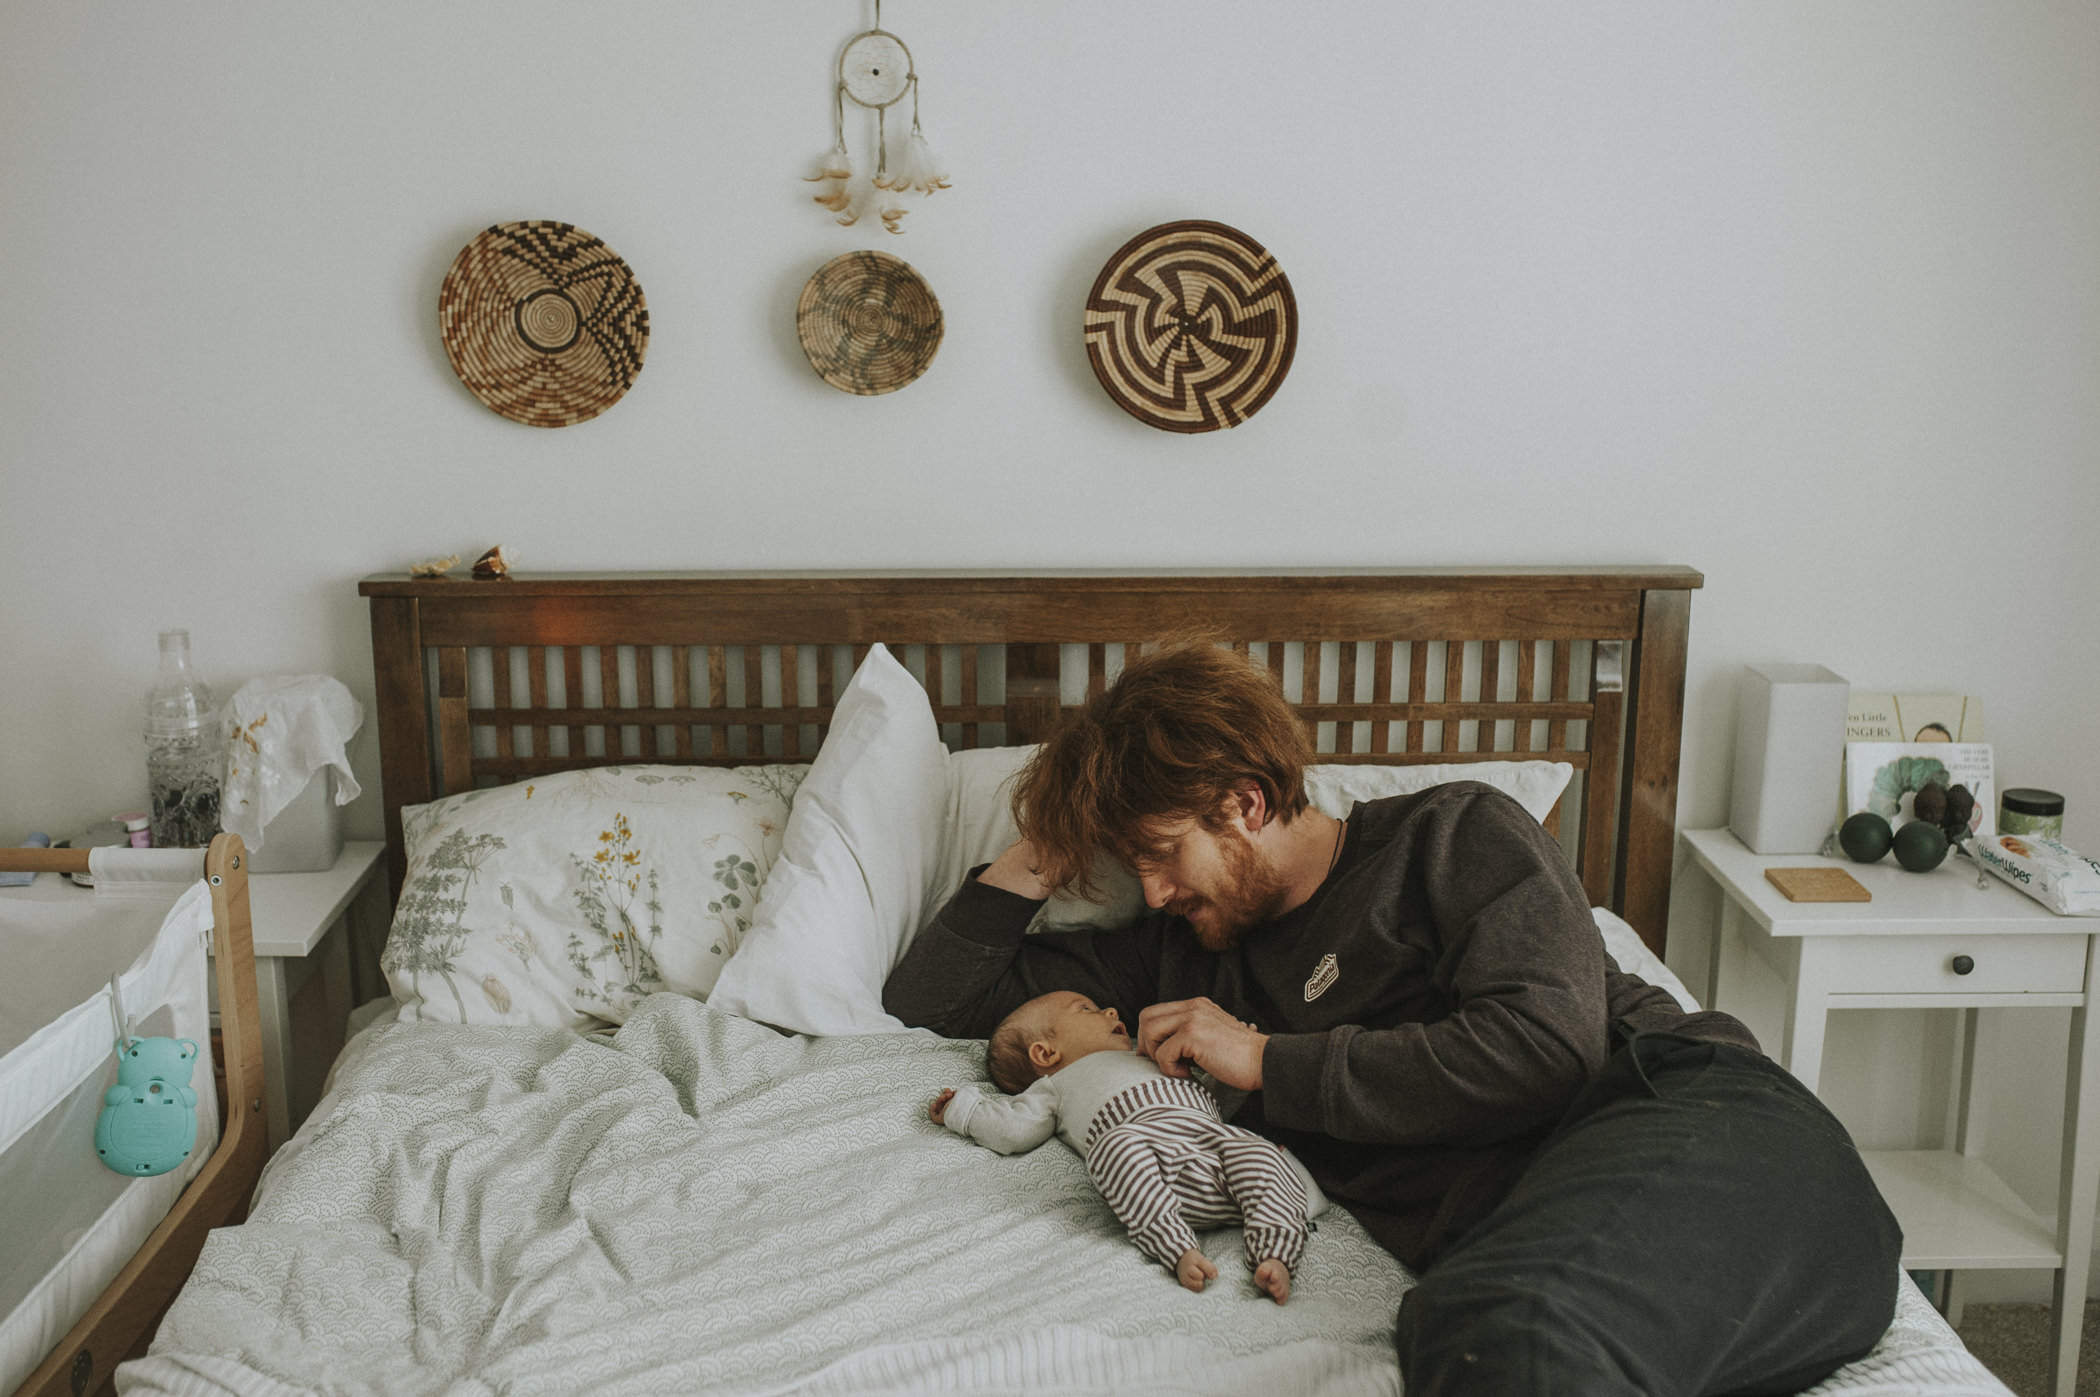 Dad and baby cuddling on bed